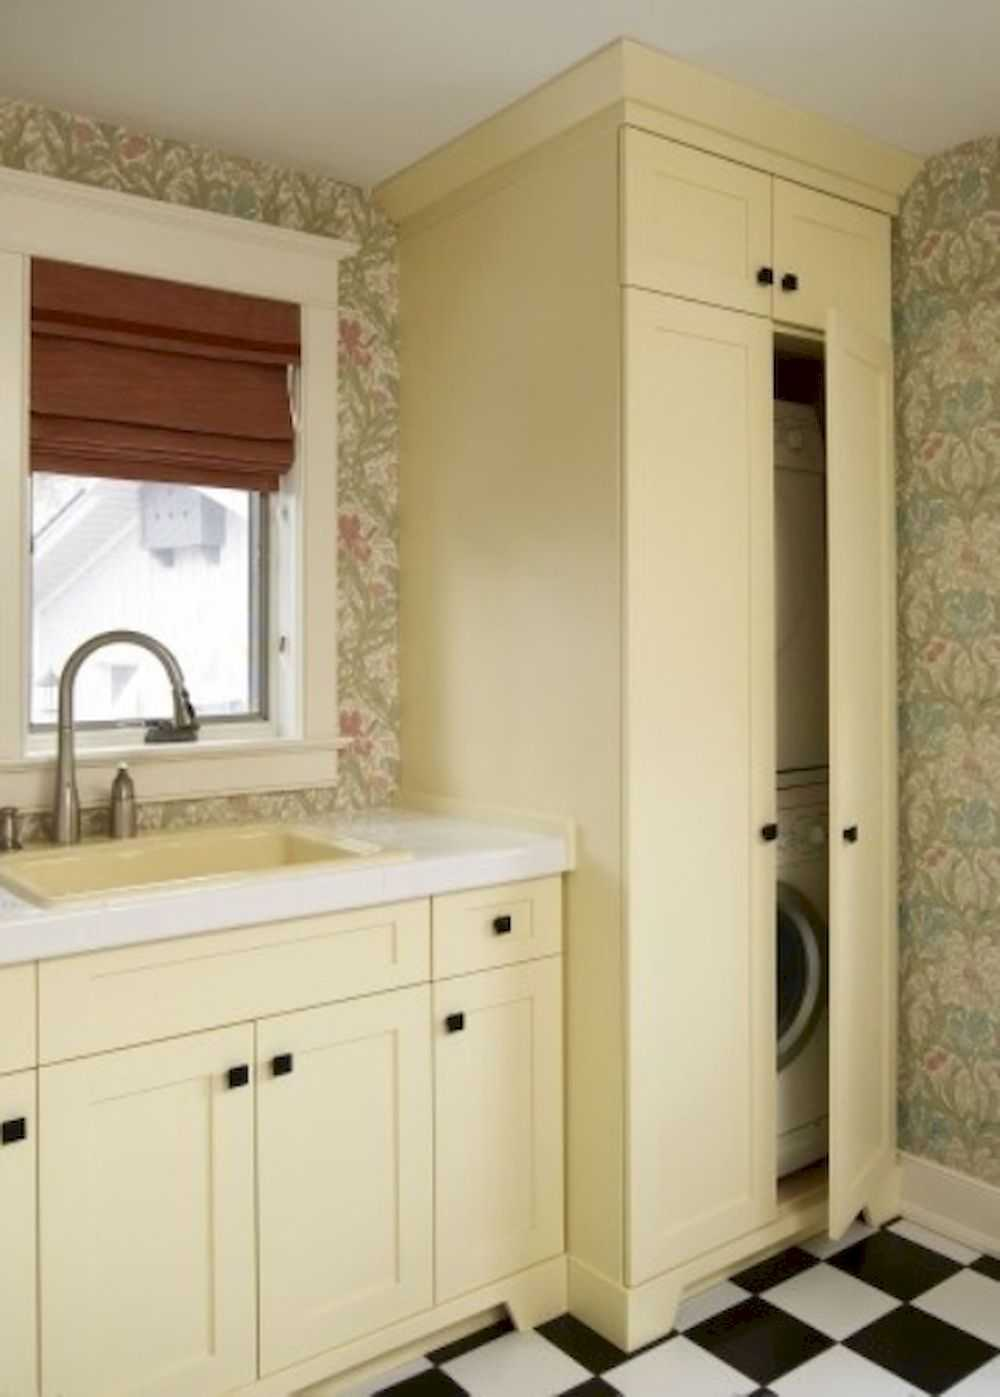 Creative Ways To Hide A Washing Machine In A Bathroom